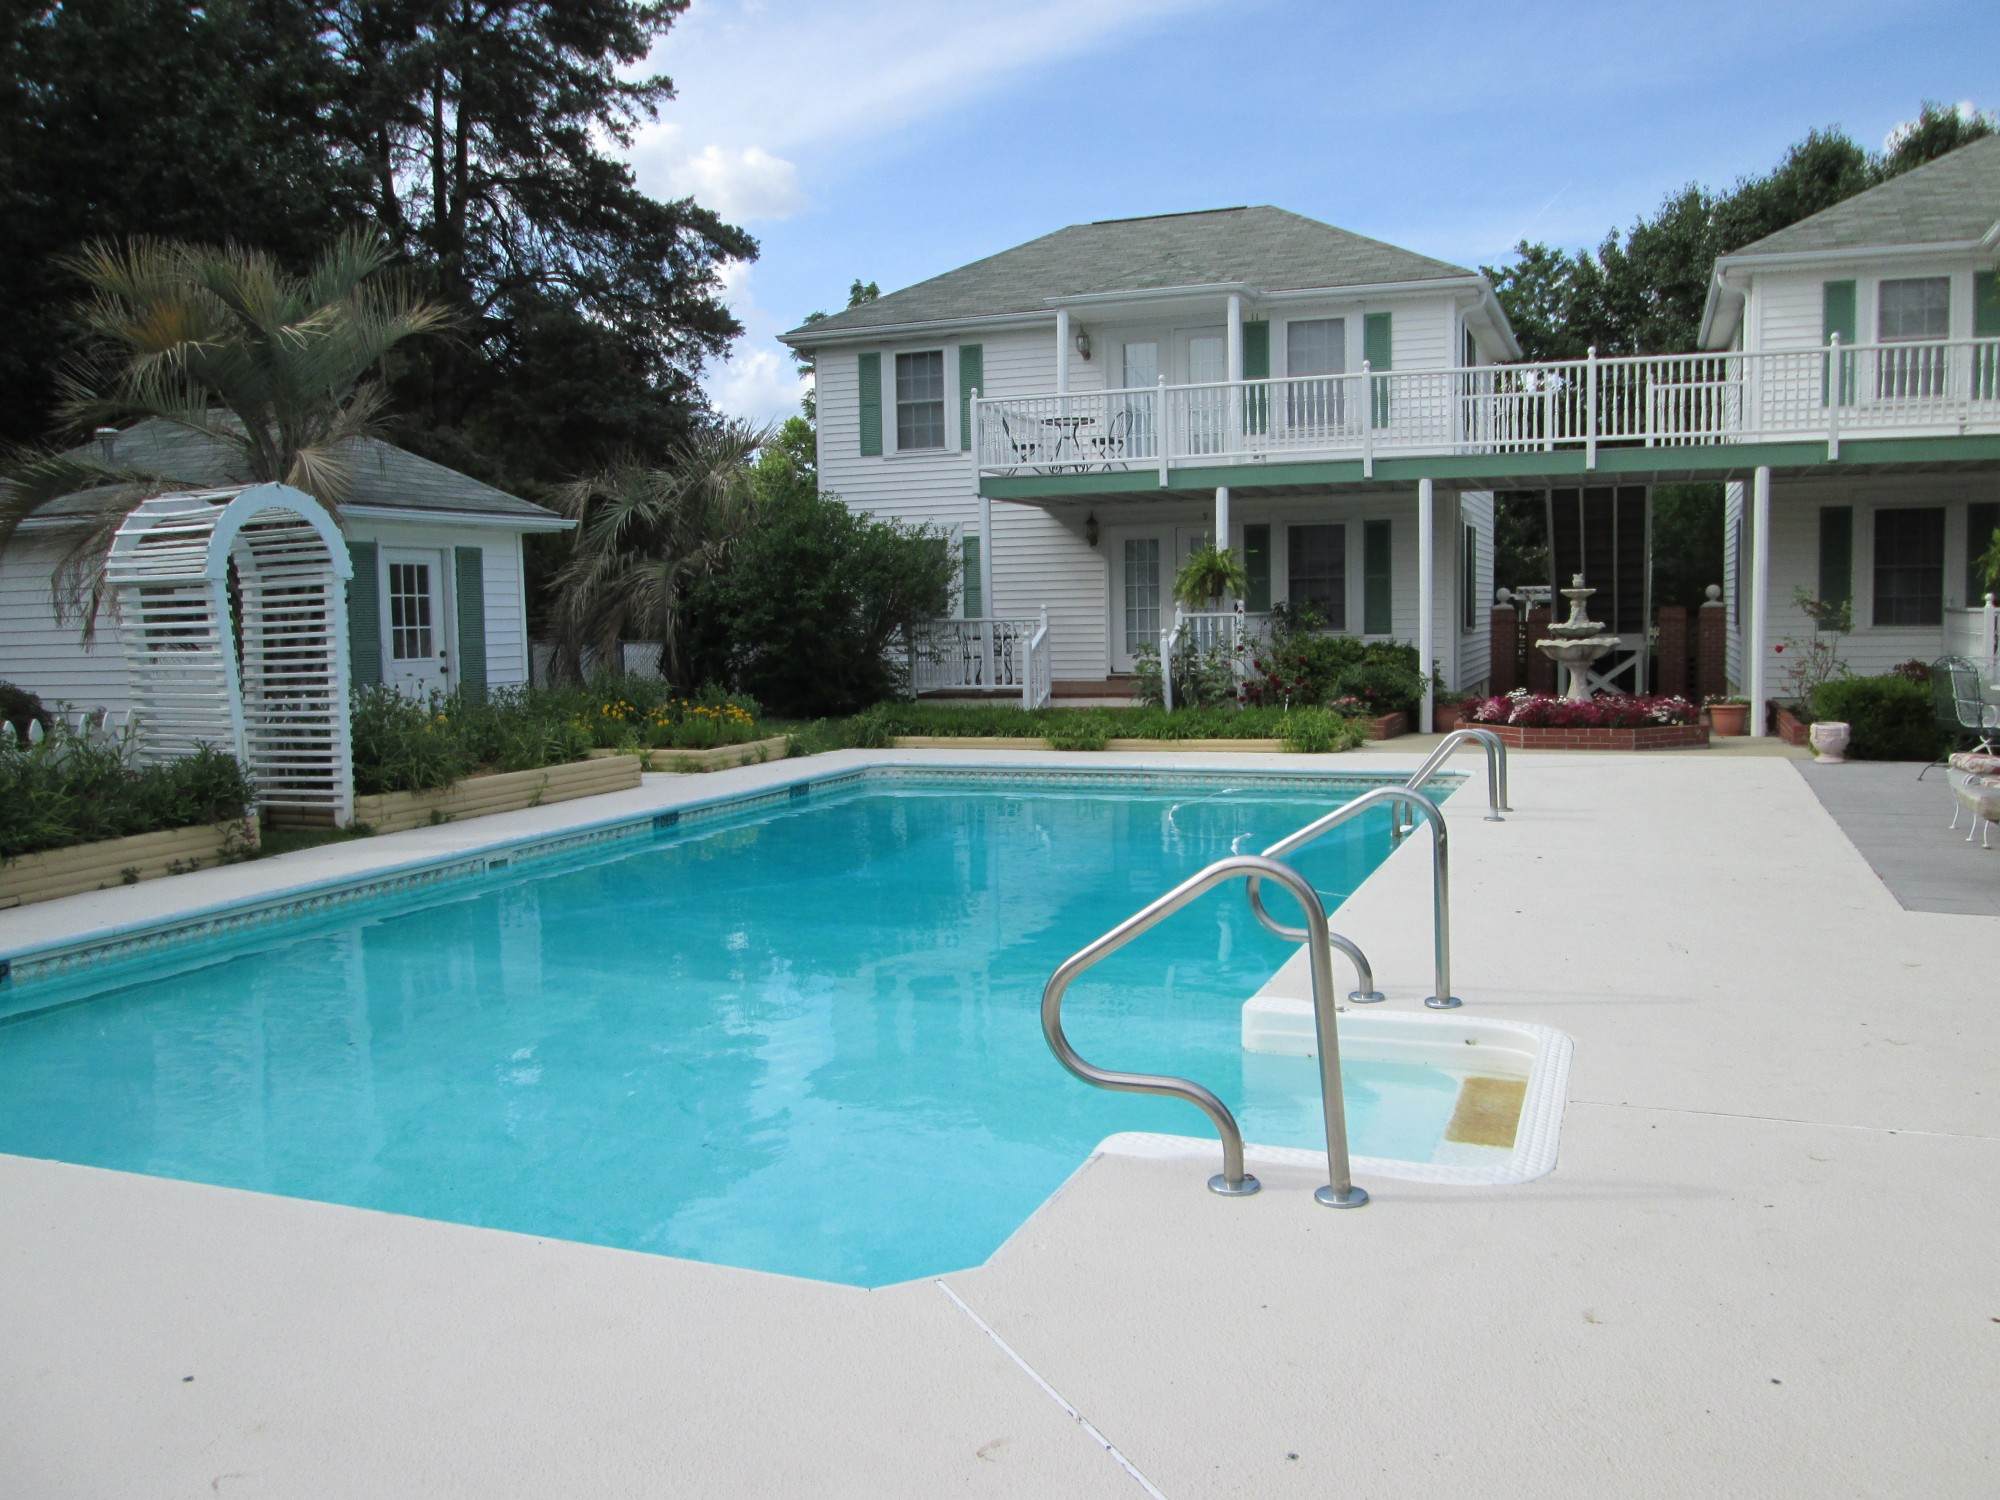 http://anniesinnbnb.com/wp-content/uploads/pool-area-and-cottages-9-10-11-12-e14018257624392.jpg